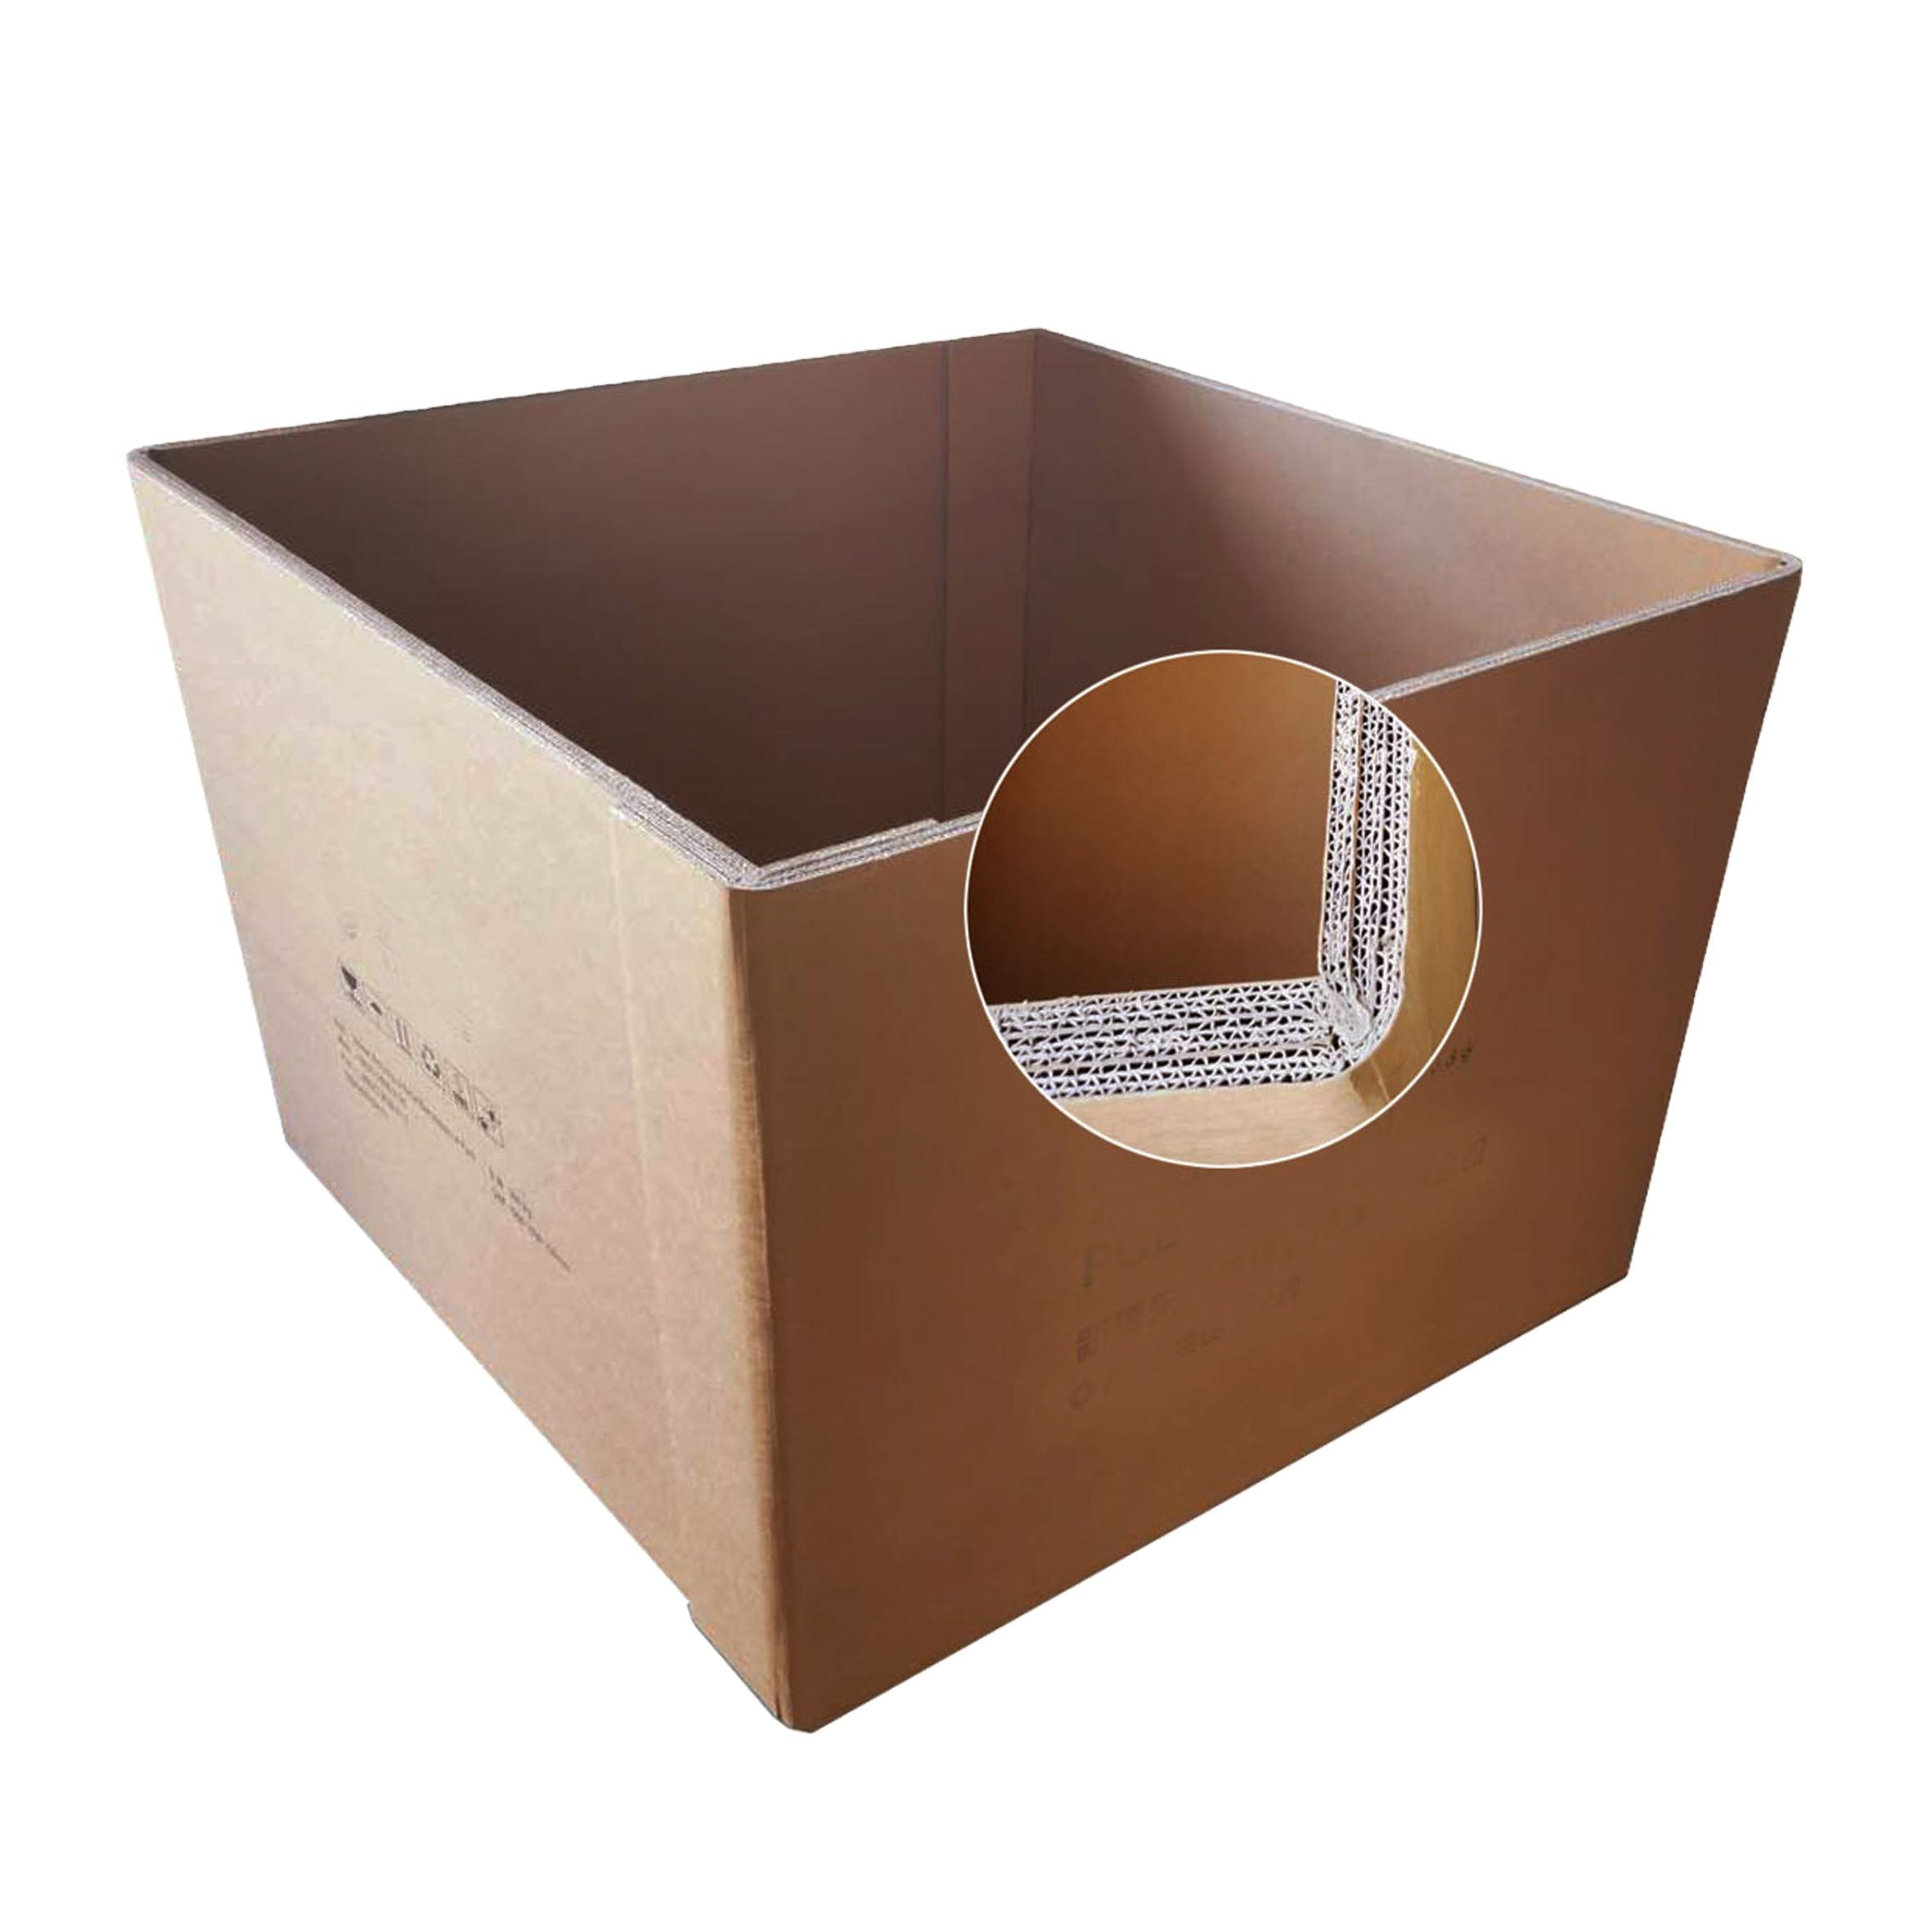 carton packing box corrugated cardboard carton furniture buy boxes